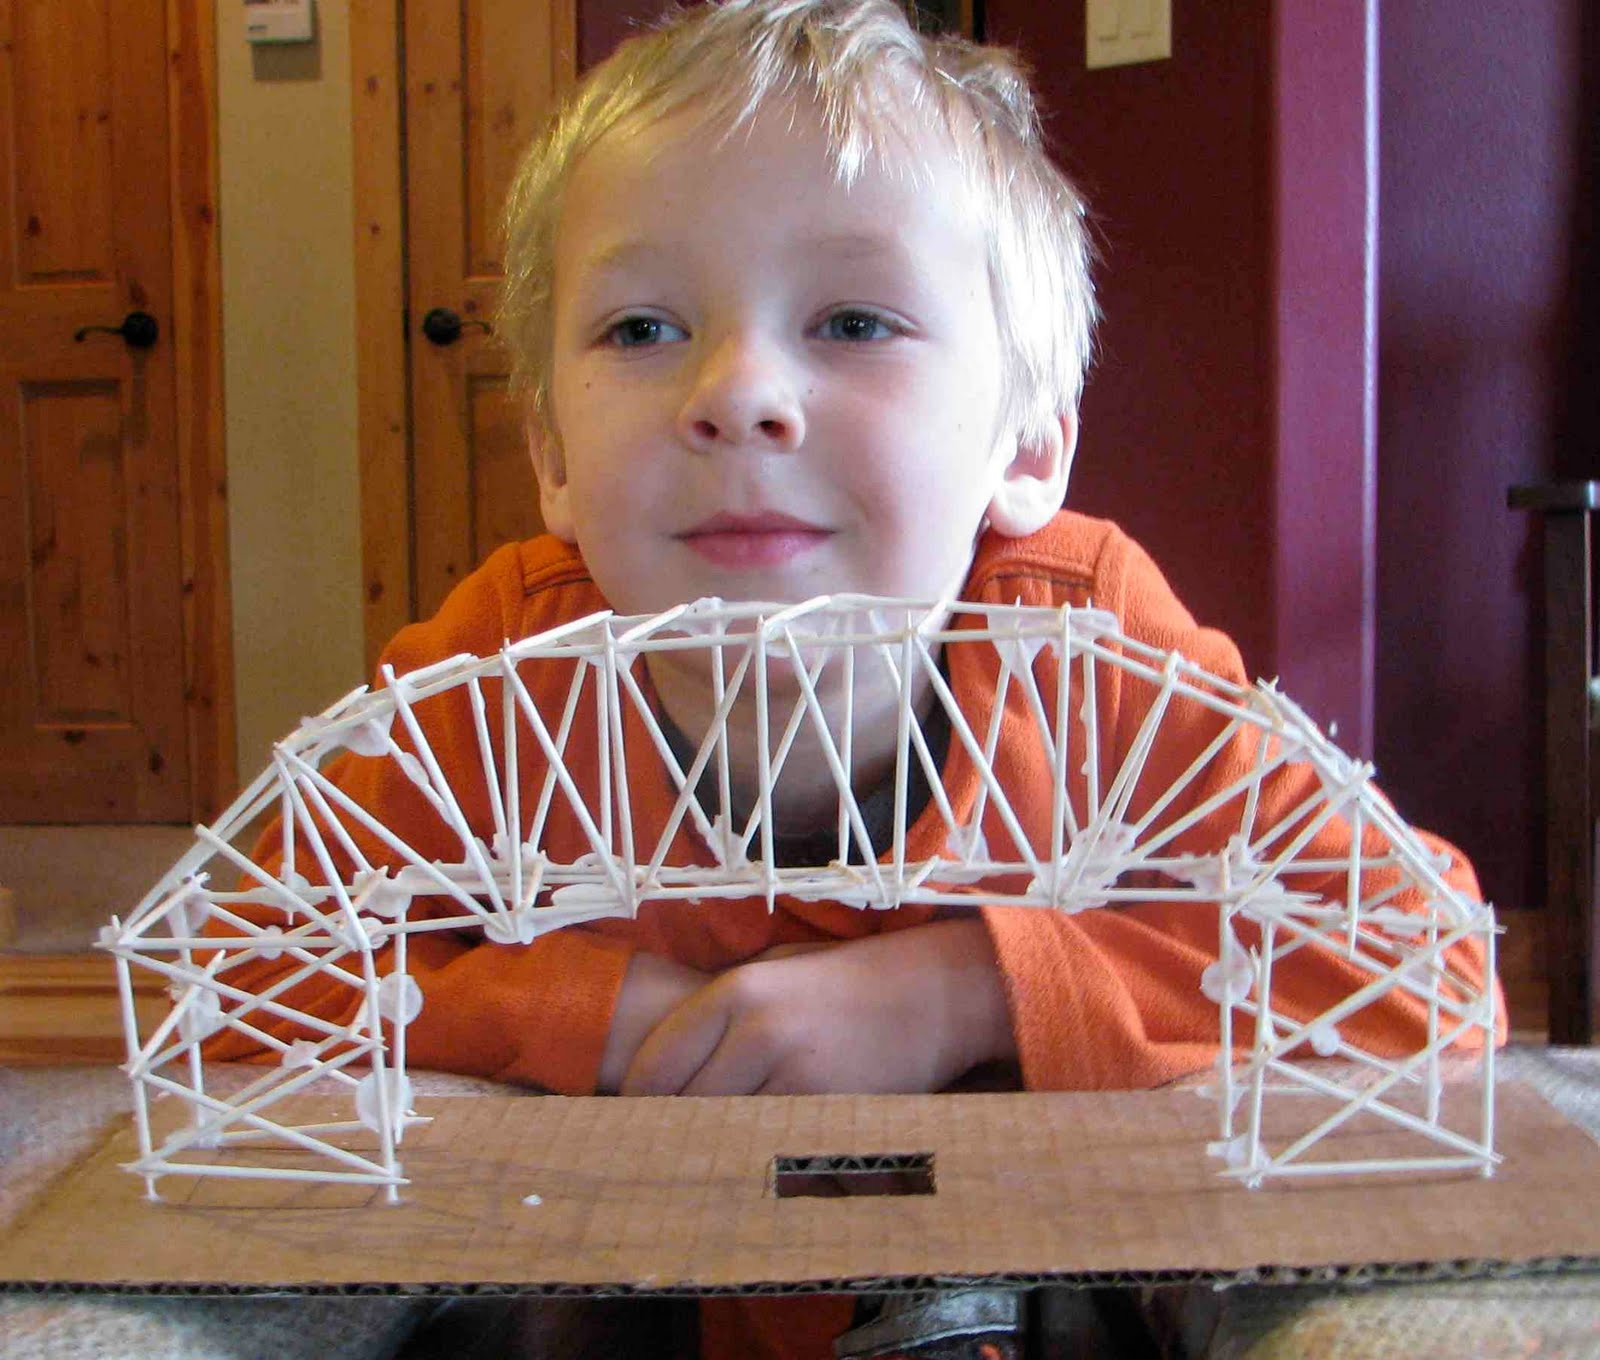 how to make a strong toothpick bridge